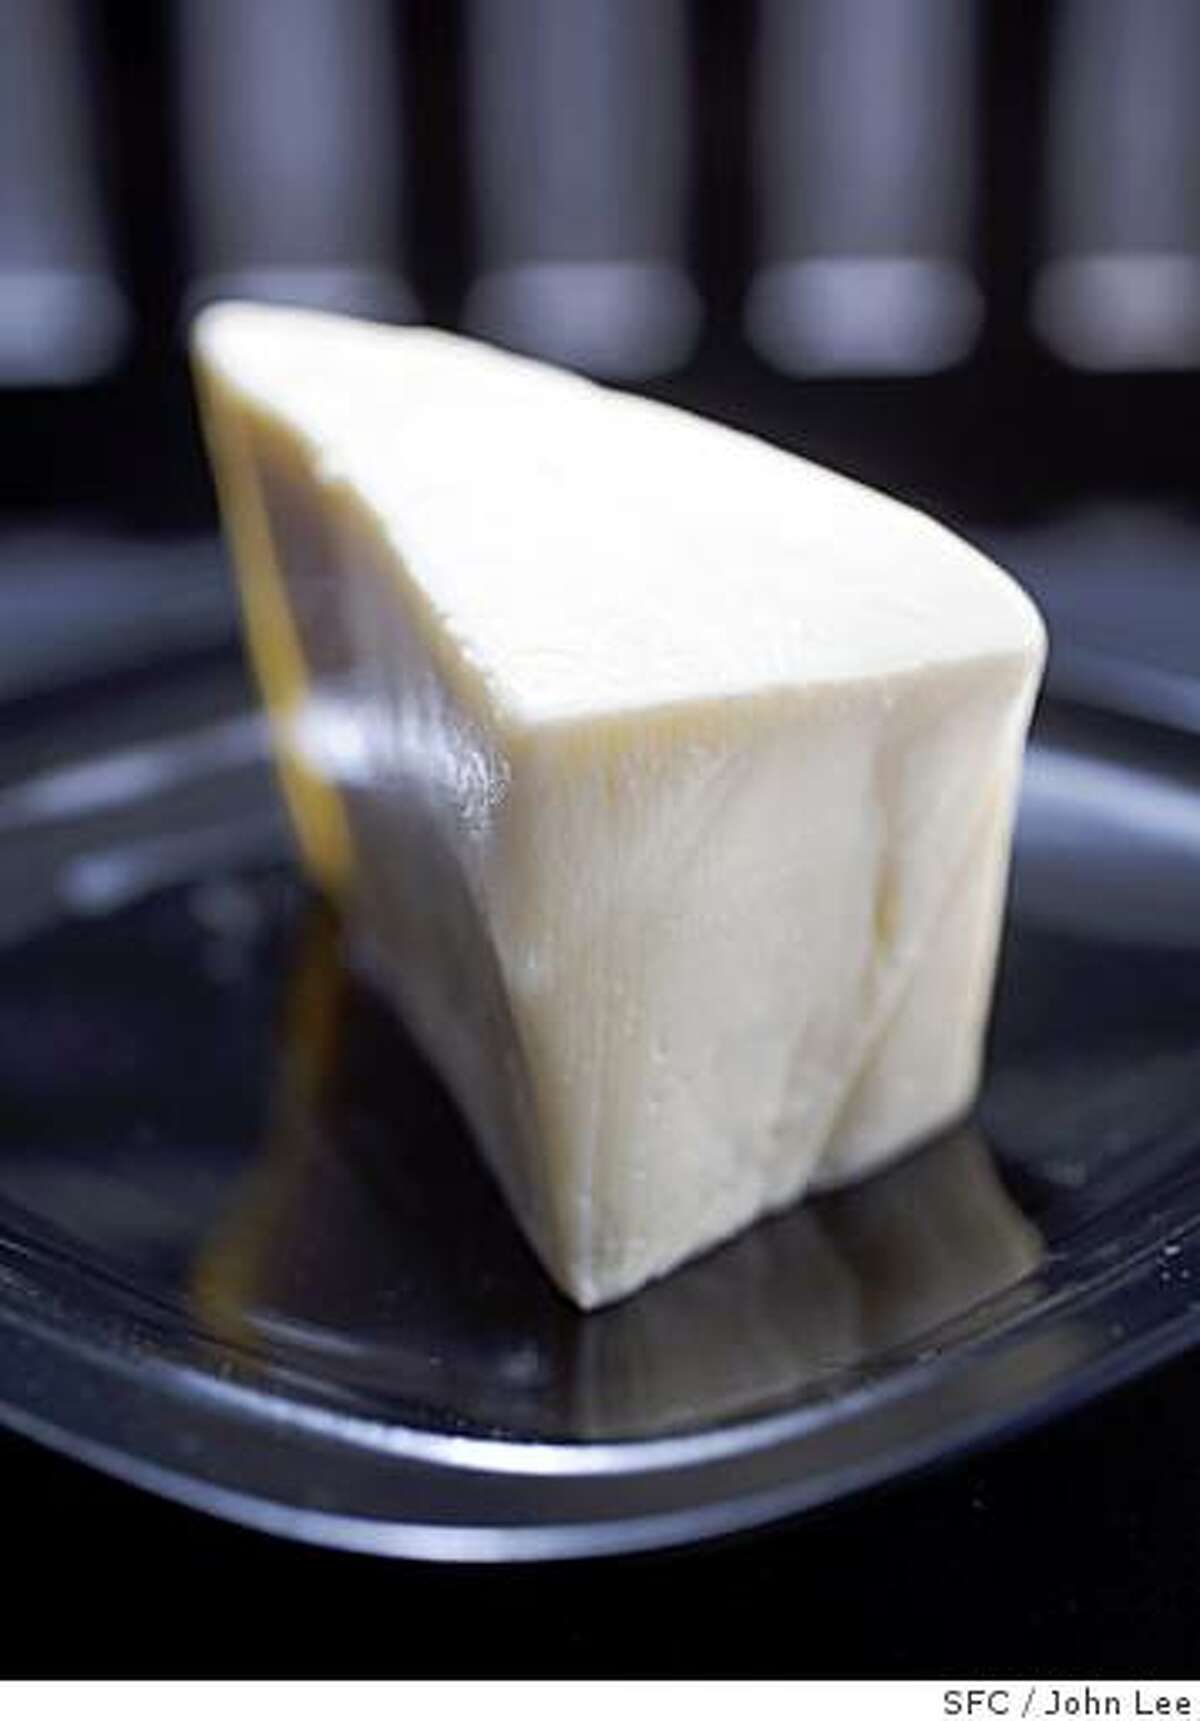 CHEESE06_JOHNLEE.JPG Kashkaval sheep's milk from Bulgaria.BY JOHN LEE / SPECIAL TO THE CHRONICLE